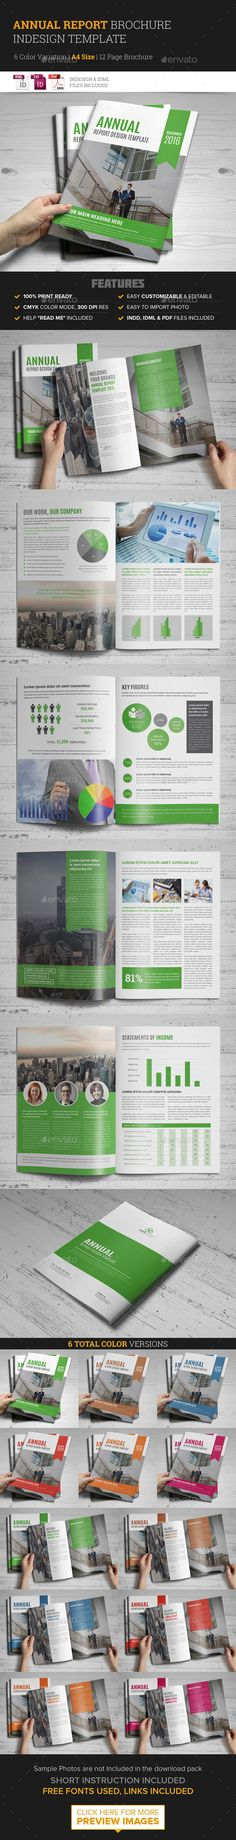 Buy Annual Report Brochure Indesign Template by JanySultana on GraphicRiver. Annual Report Brochure Indesign Template Ready to use for Annaul Report, Business Report, Corporate Brochure and Cata. Brochure Indesign, Brochure Layout, Brochure Template, Design Brochure, Brochure Ideas, Page Layout Design, Web Design, Packaging Design Inspiration, Graphic Design Inspiration